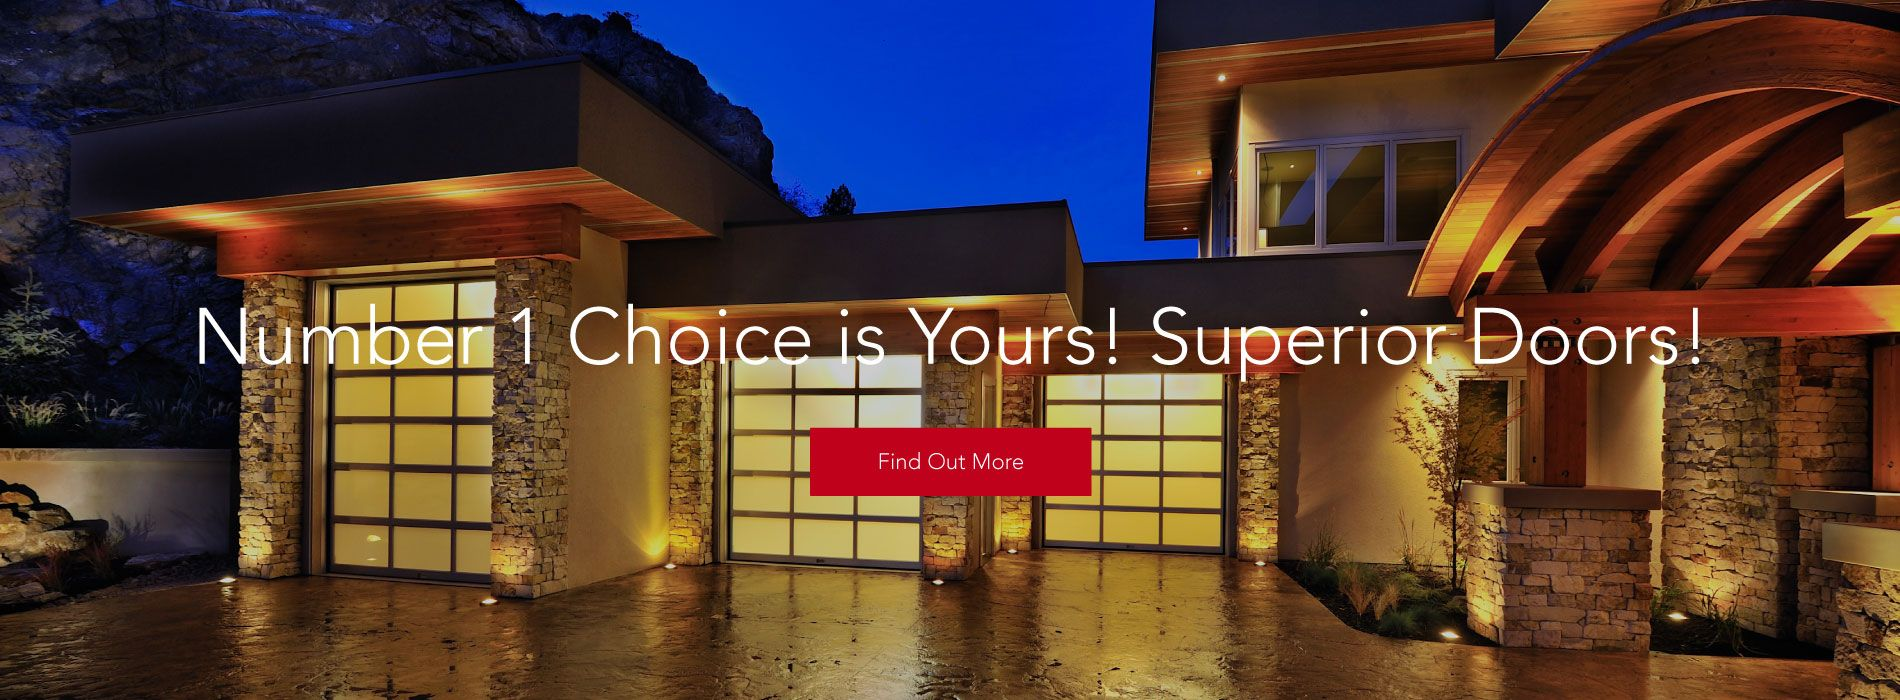 Number 1 Choice is Yours! Superior Doors! | Find Out More